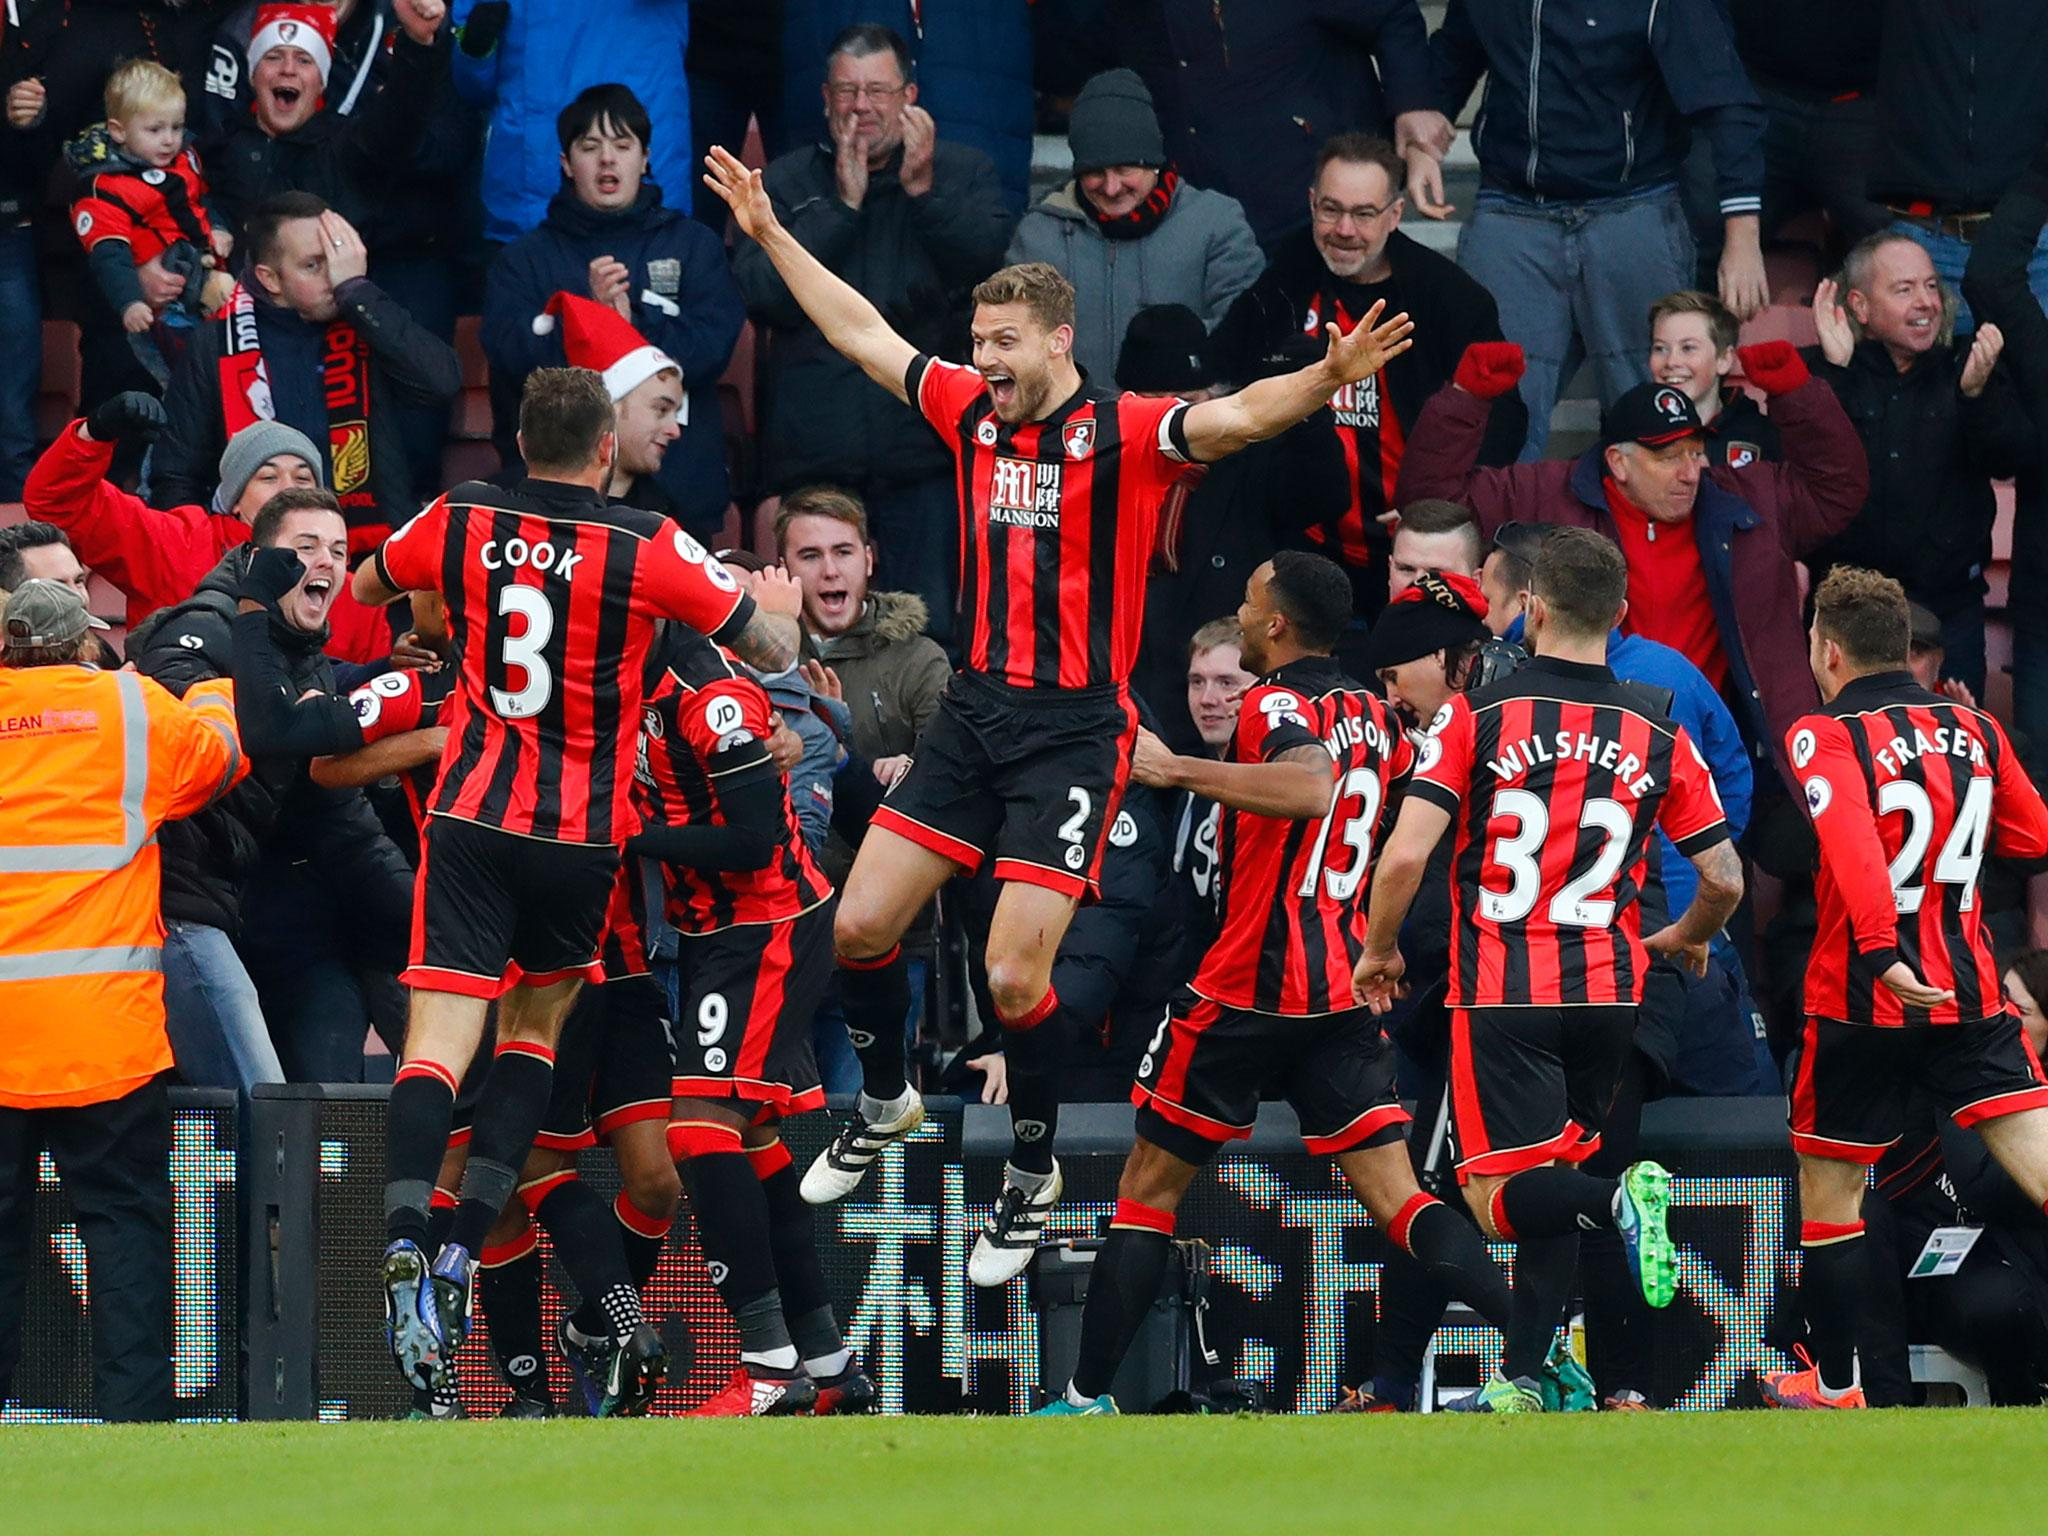 Bournemouth V Liverpool: Bournemouth Vs Liverpool Match Report: Cherries Fight Back